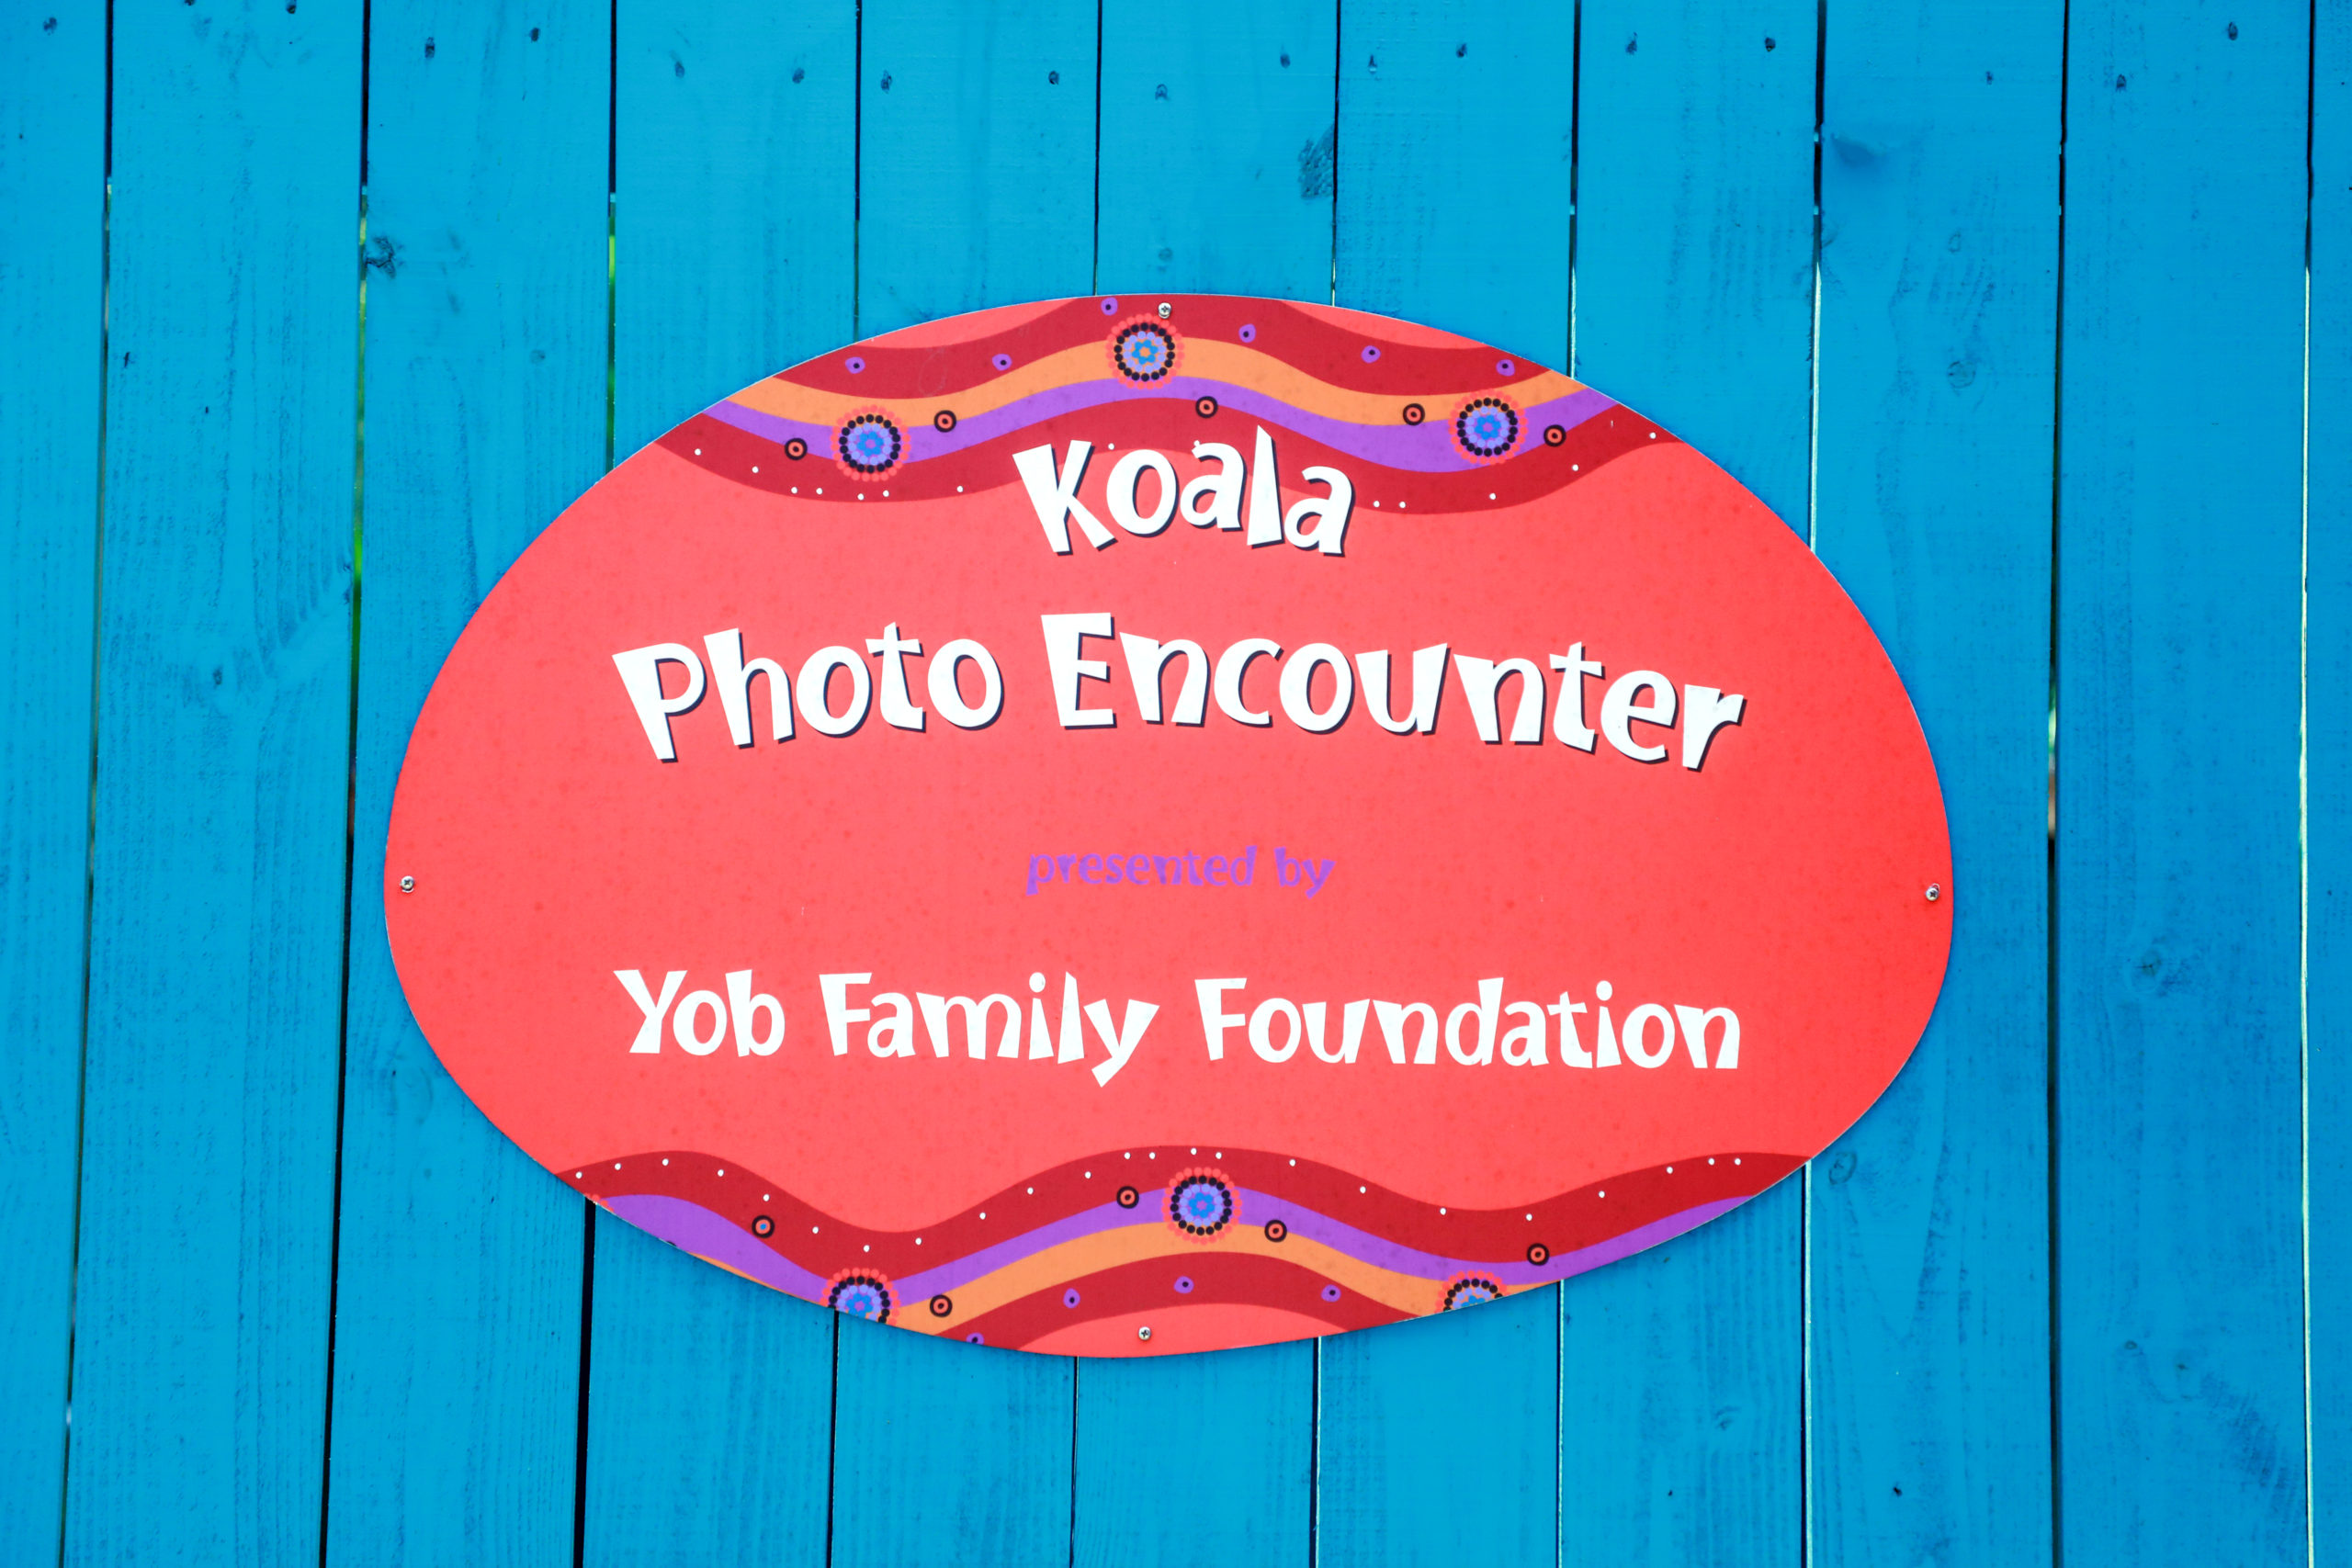 Koala Encounter - Jon Yob